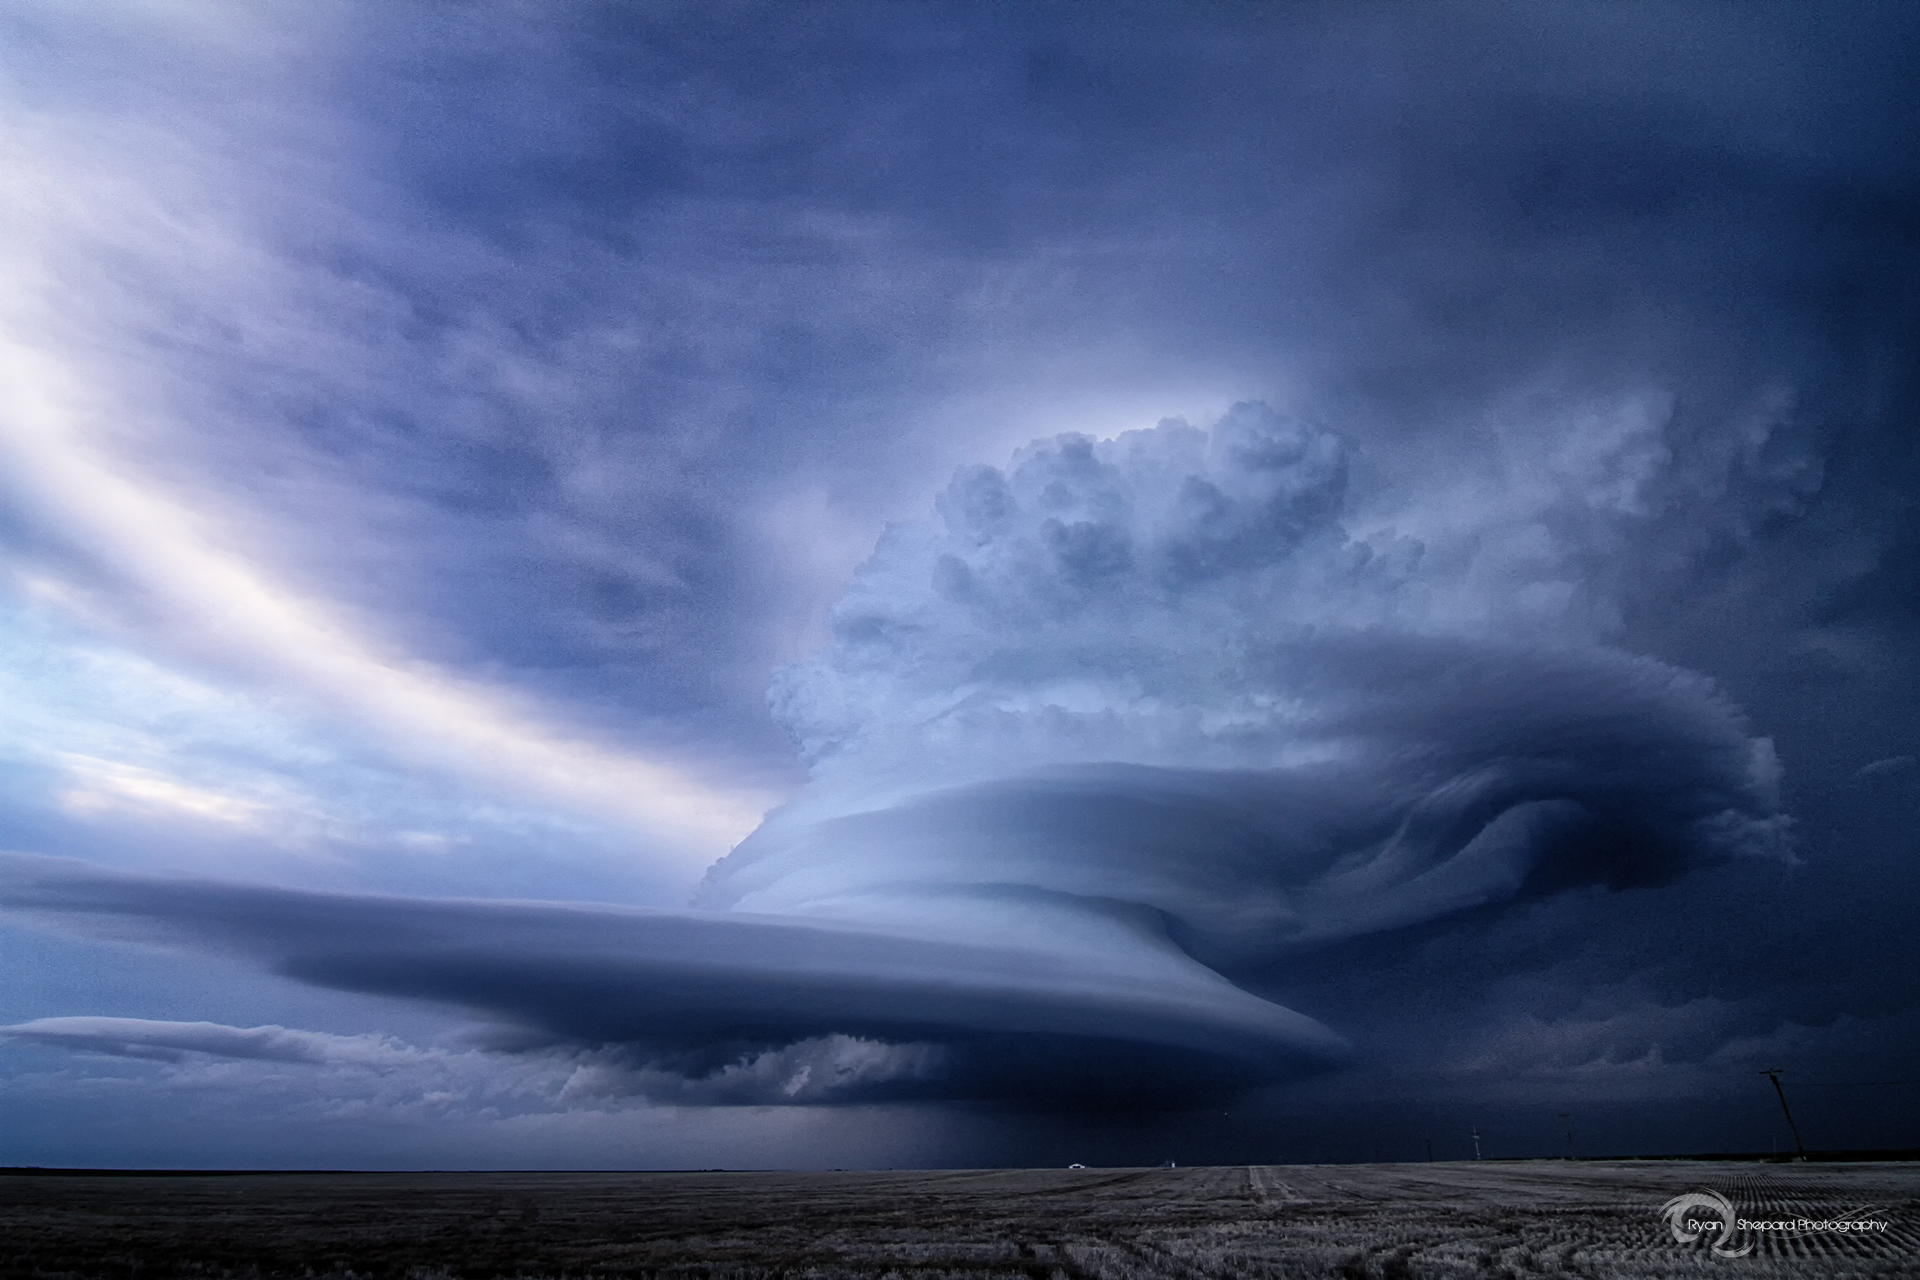 capture by Ryan Shepard we see a supercell thunderstorm never Ovid 1920x1280